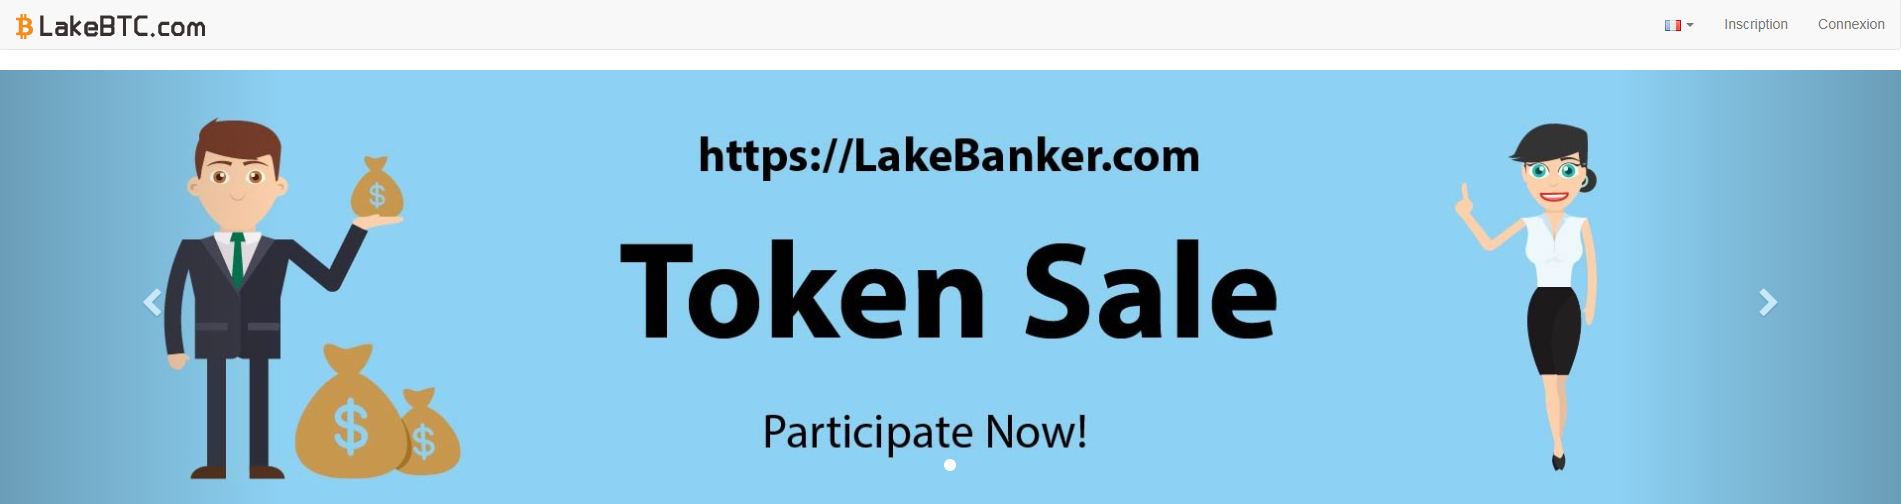 LakeBTC Review